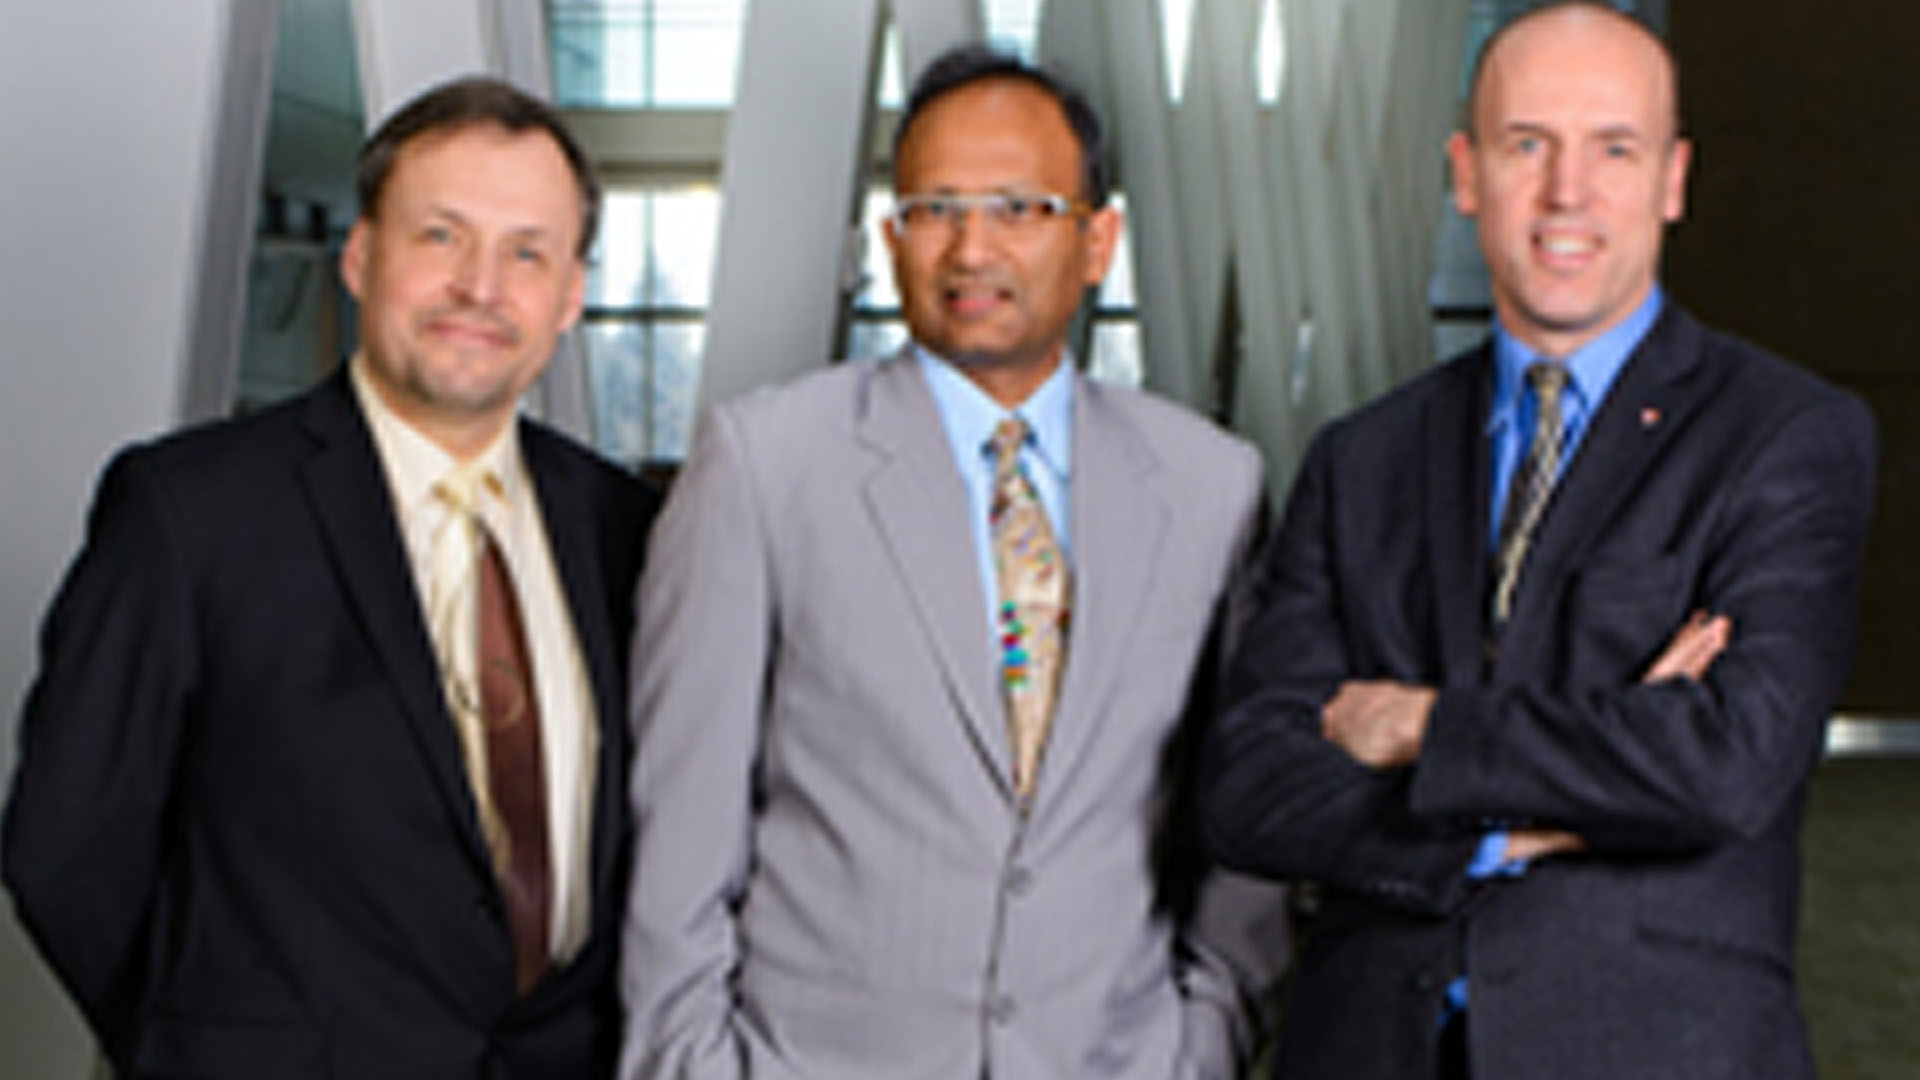 From left Dr Andrew Demchuk Dr Mayank Goyal and Dr Michael Hill